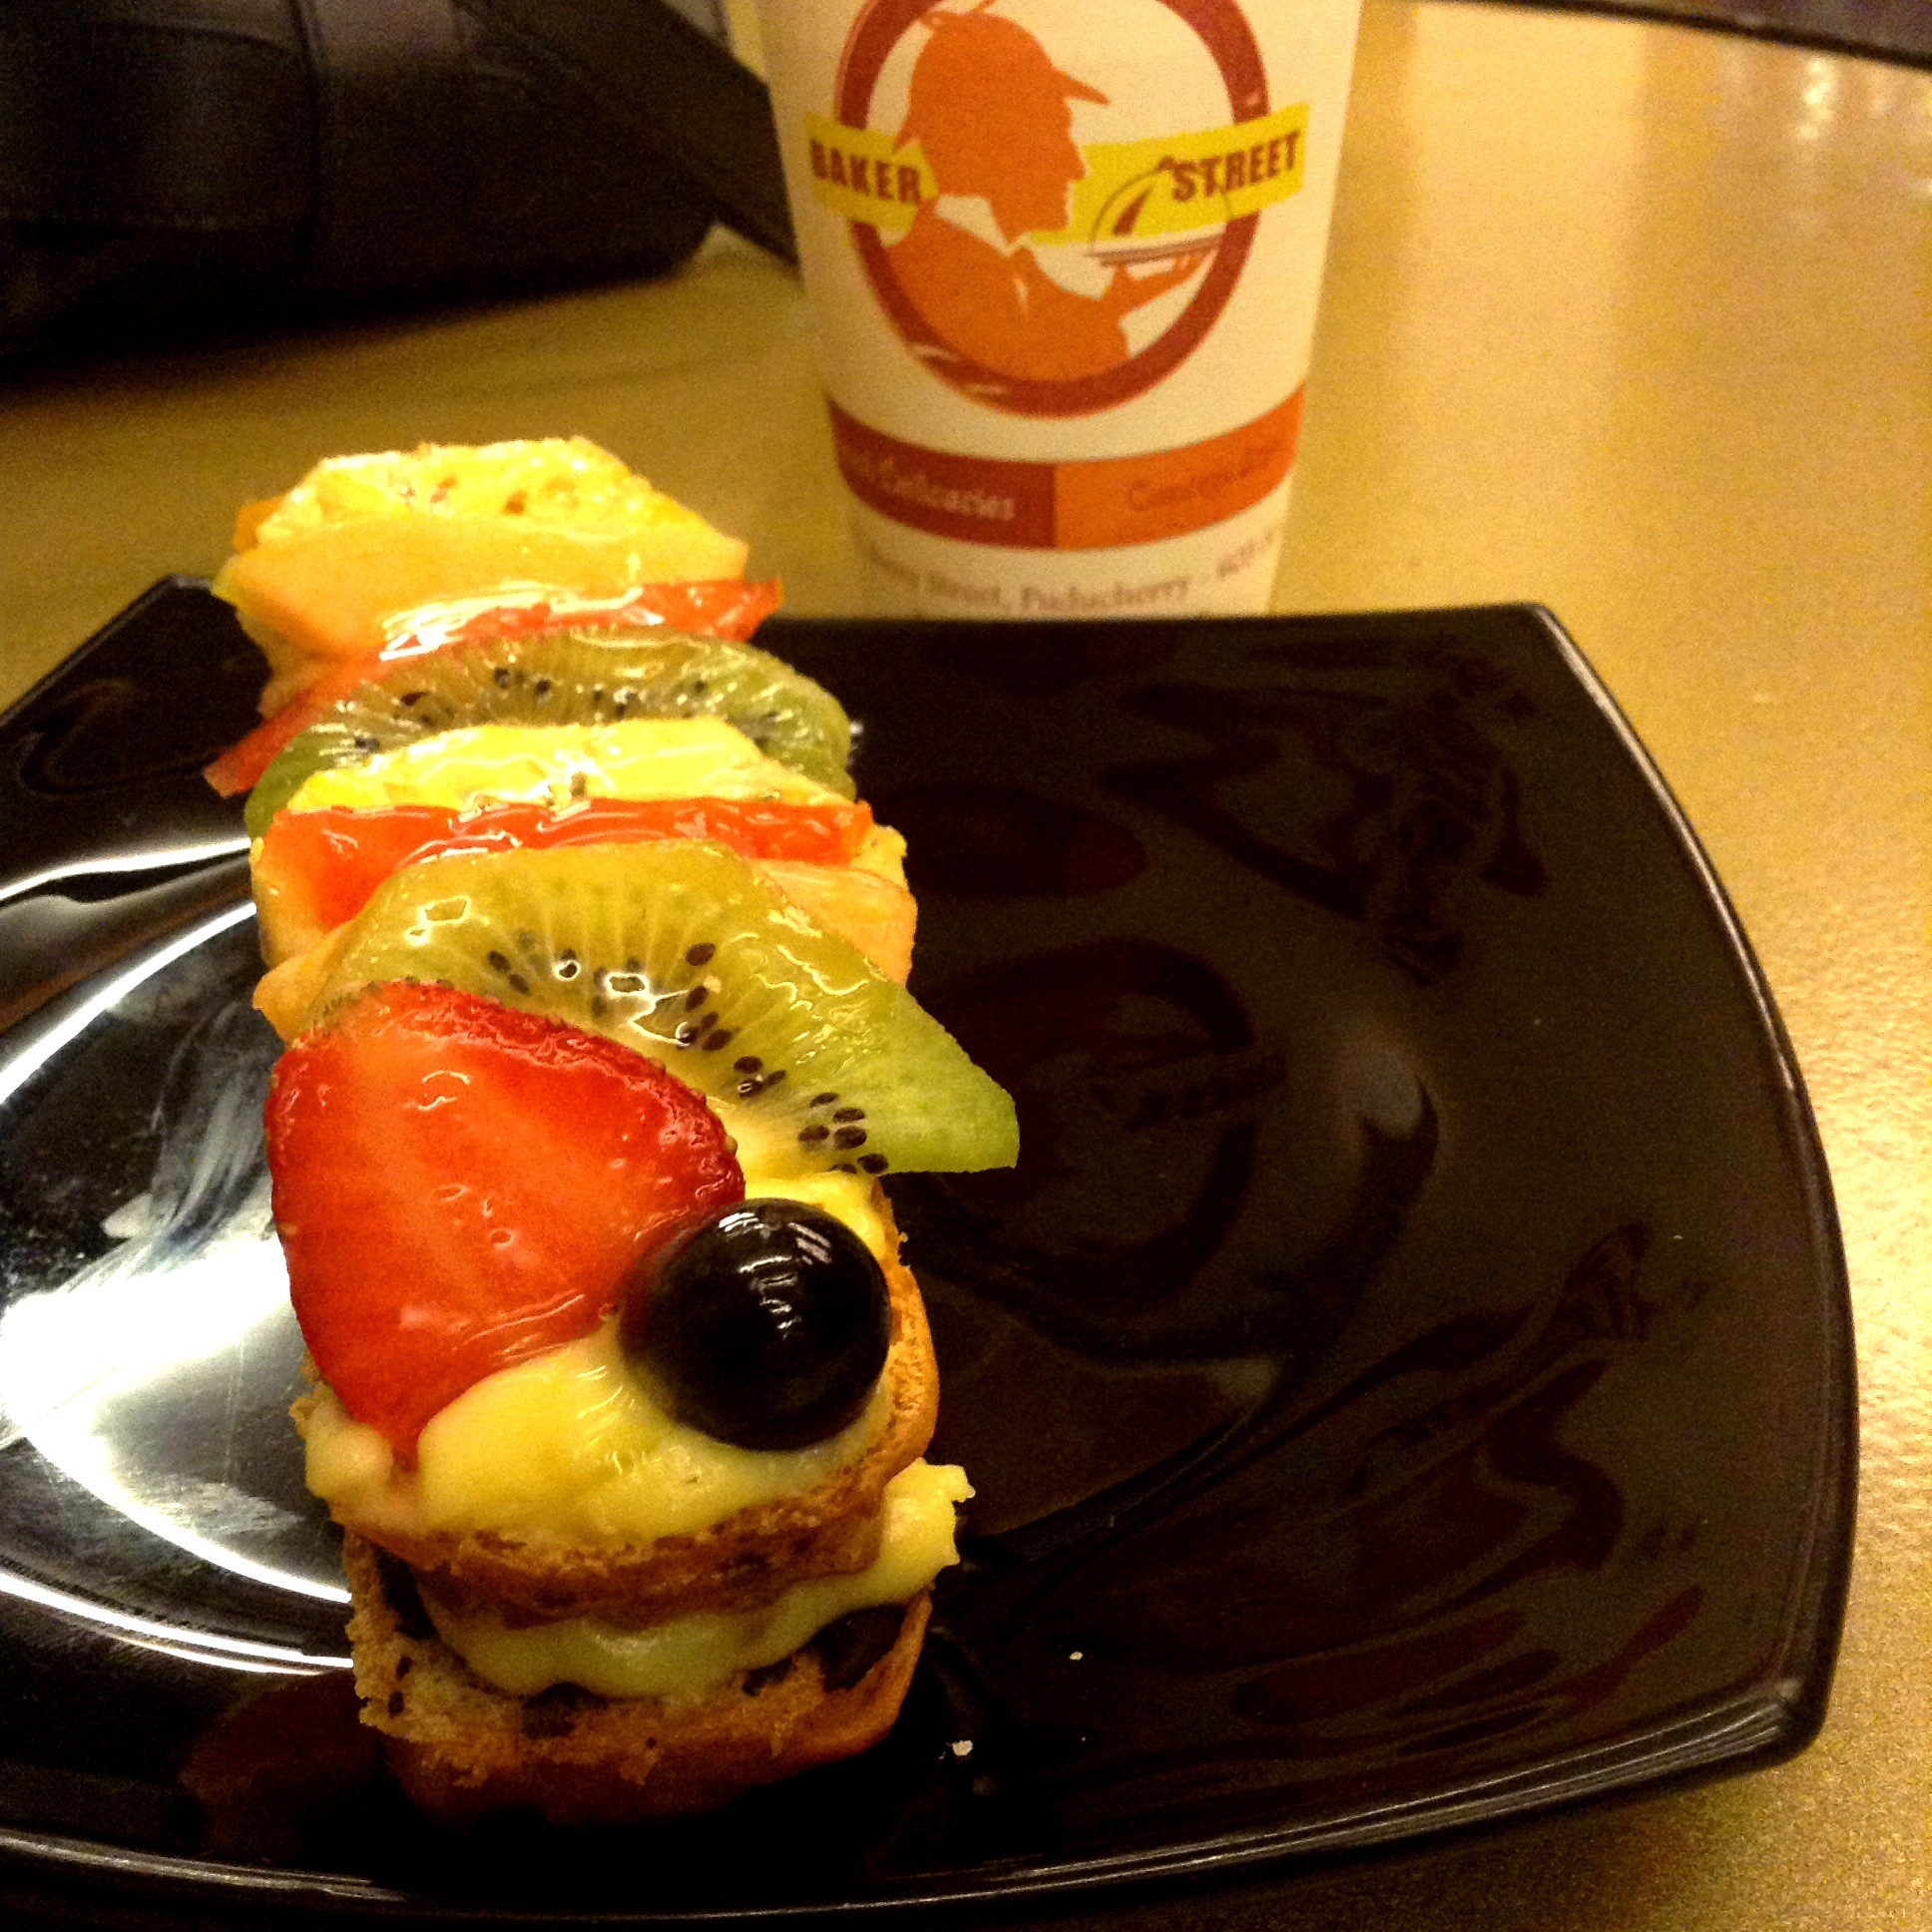 Fruit Eclair at Bakers Street